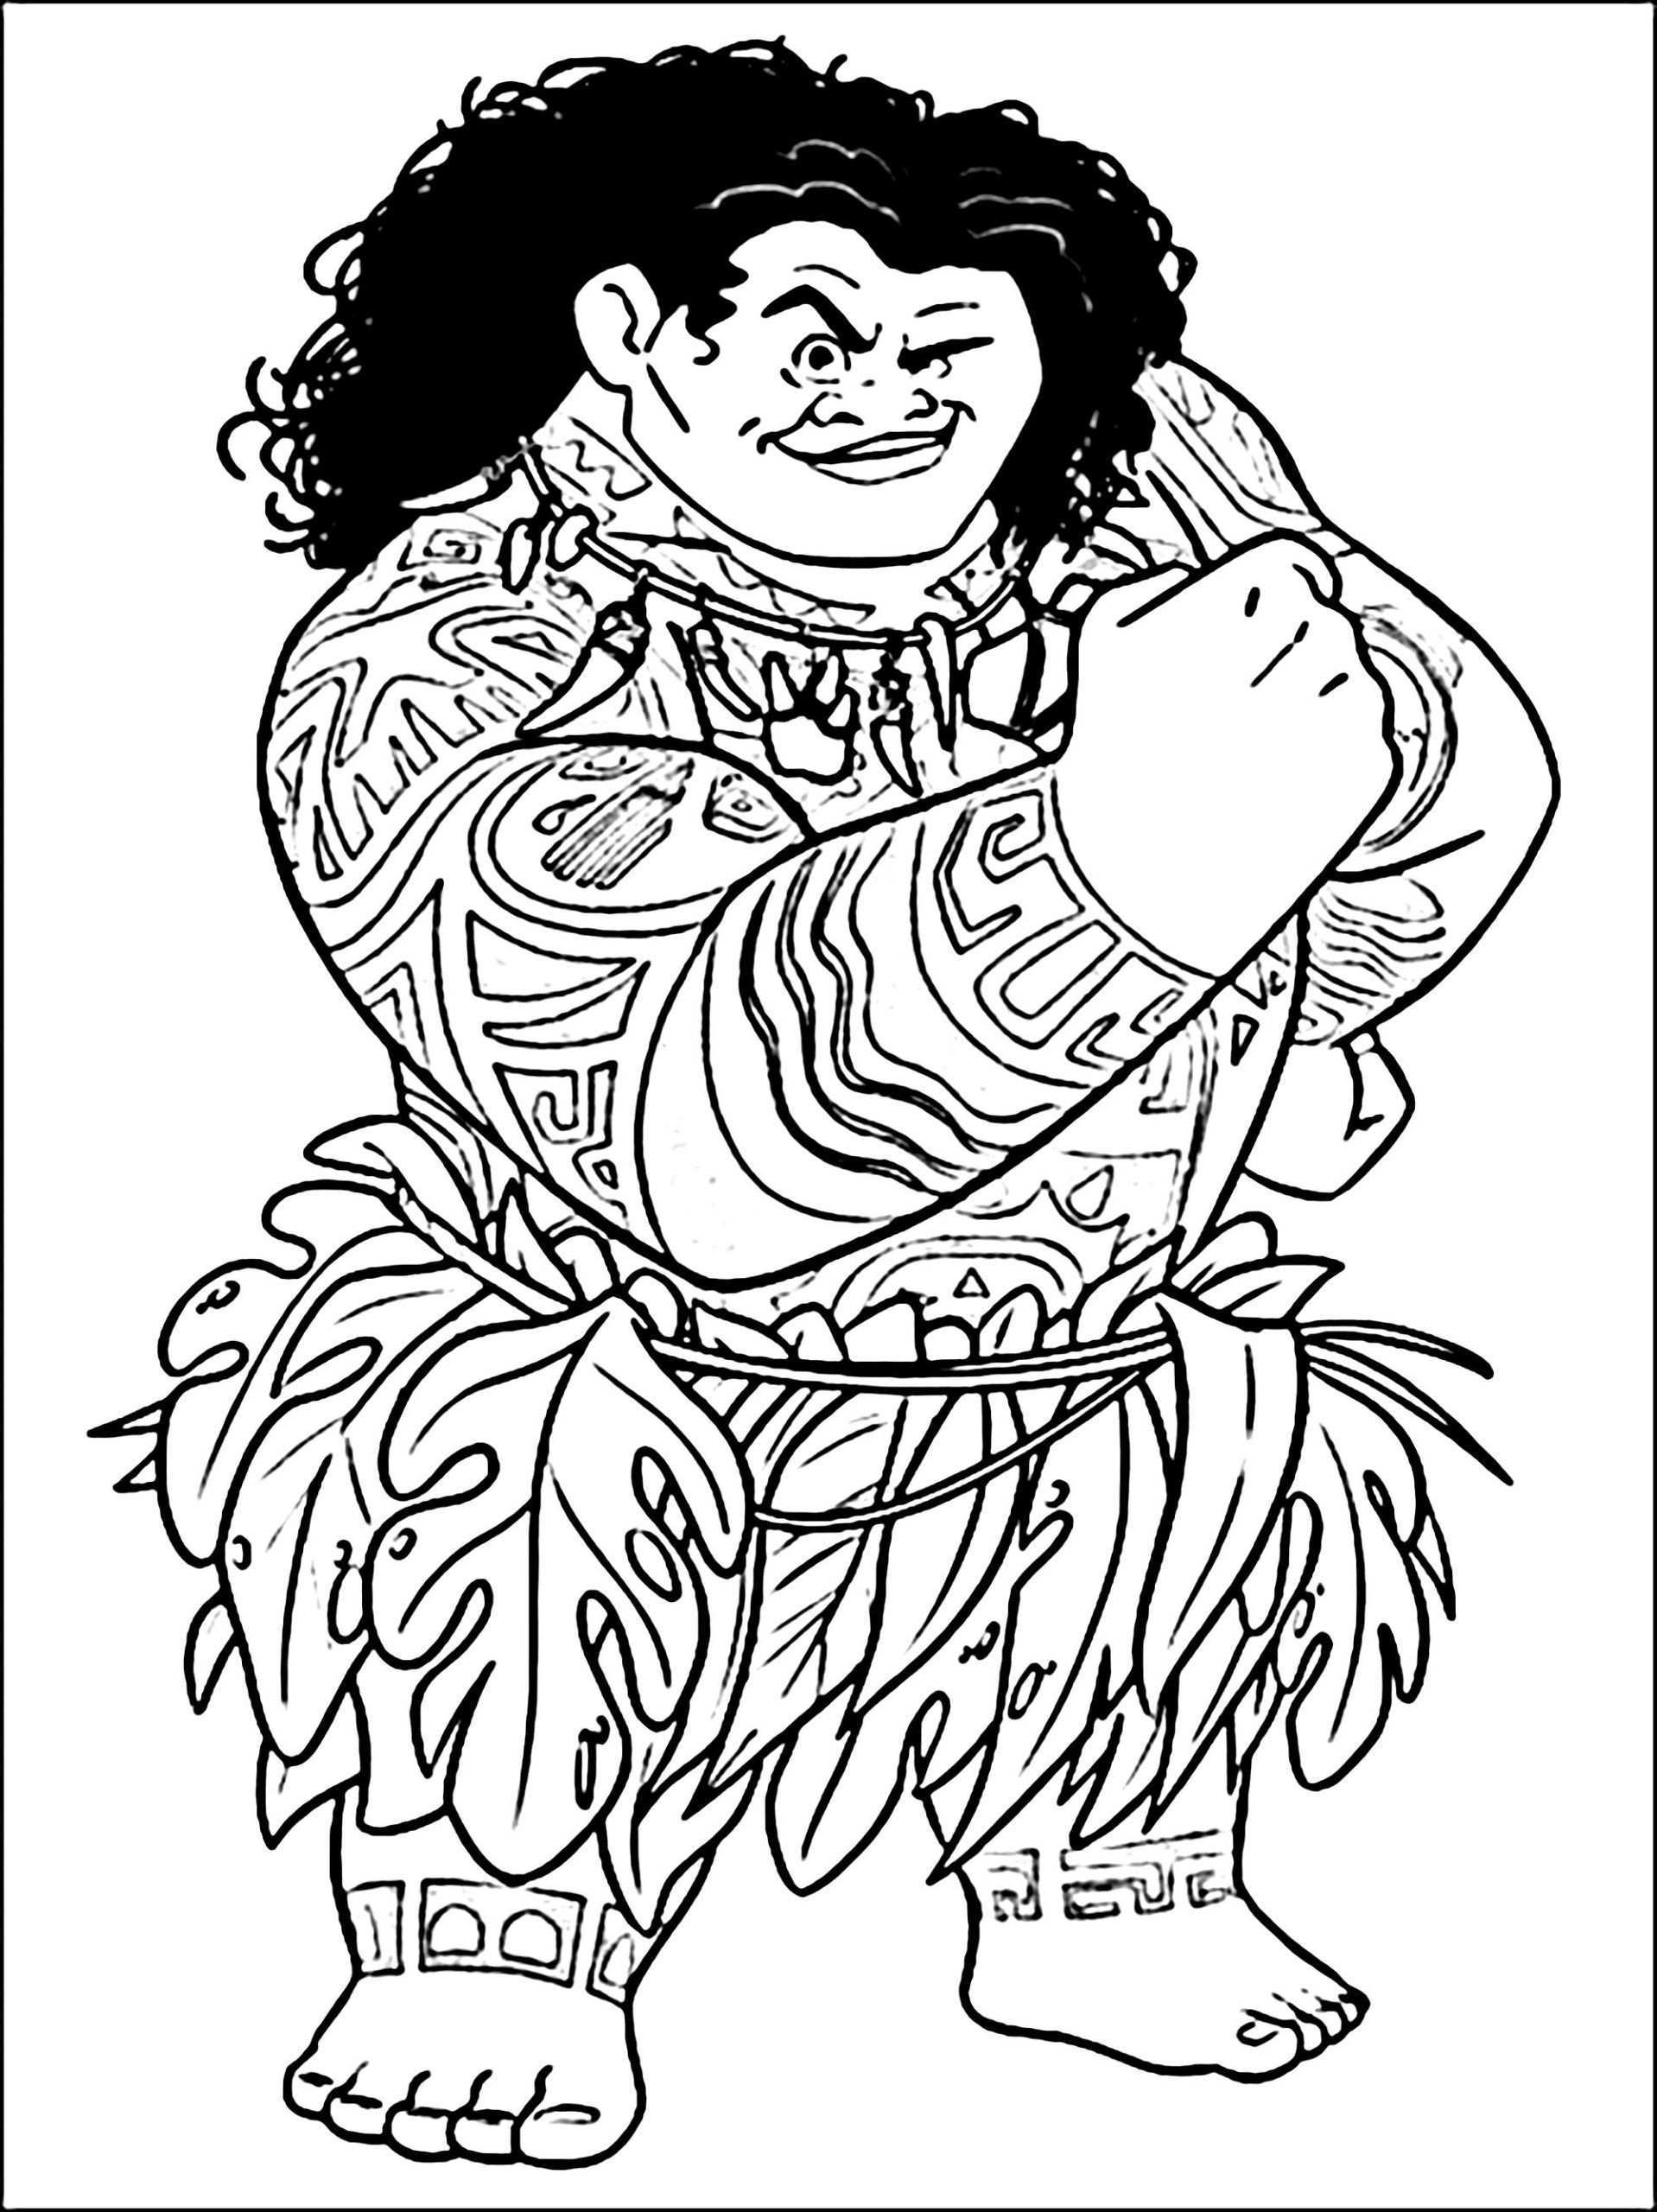 Pin By Eaglefly On Kleurplaten Moana Coloring Pages Moana Coloring Disney Princess Coloring Pages